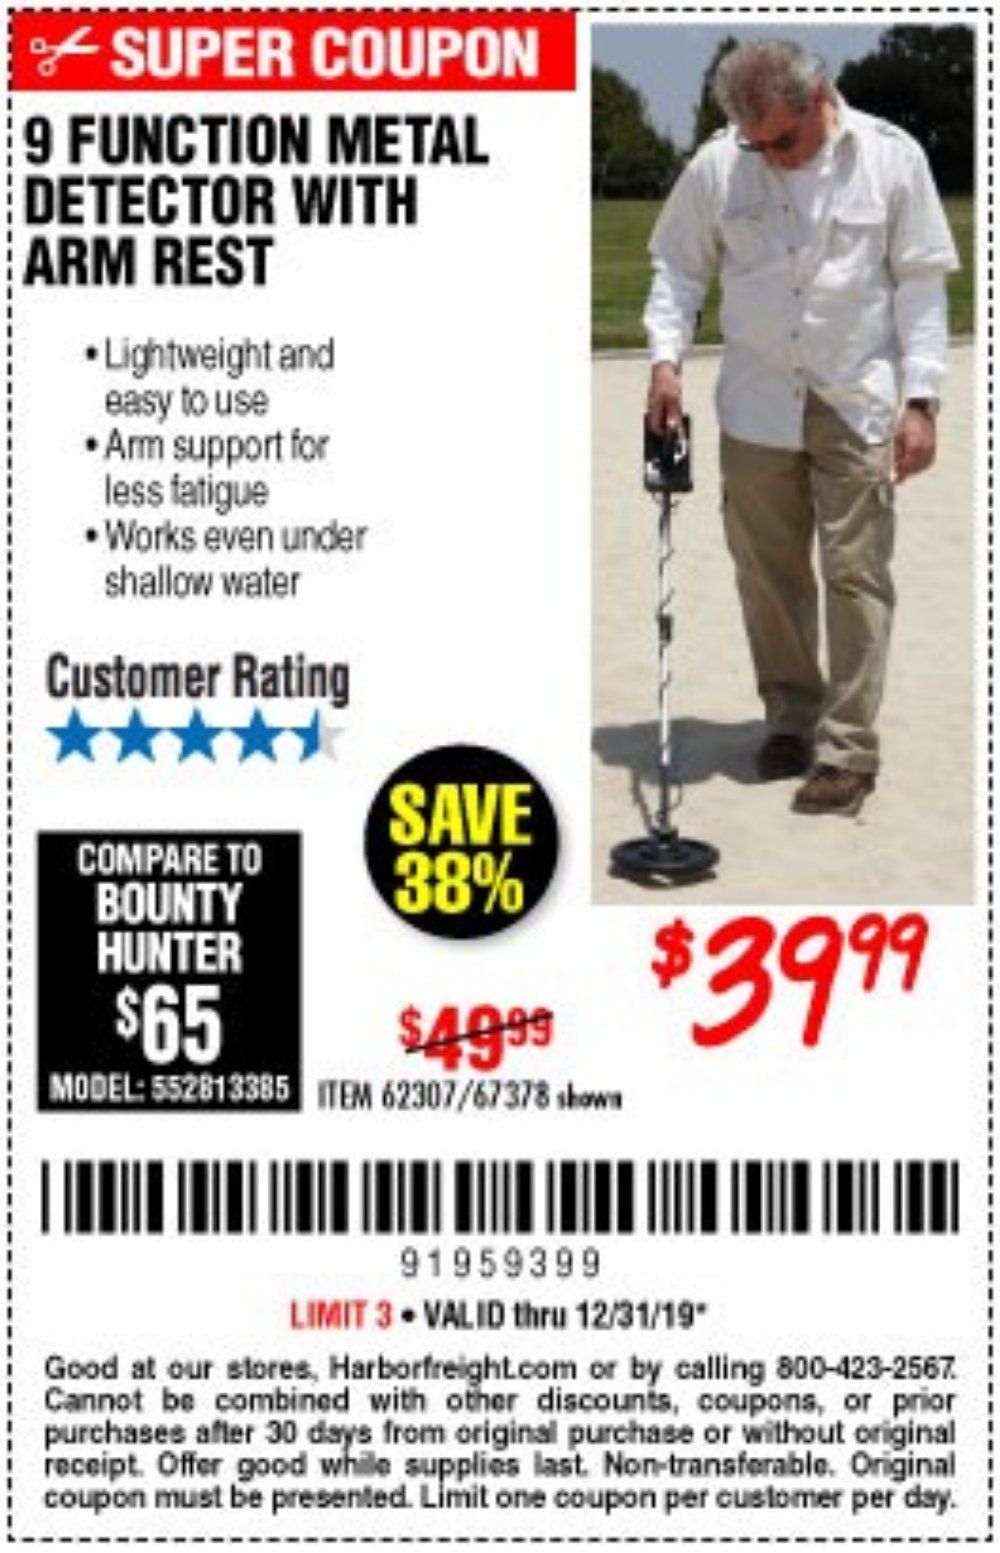 Harbor Freight Coupon, HF Coupons - 9 Function Metal Detector With Arm Rest